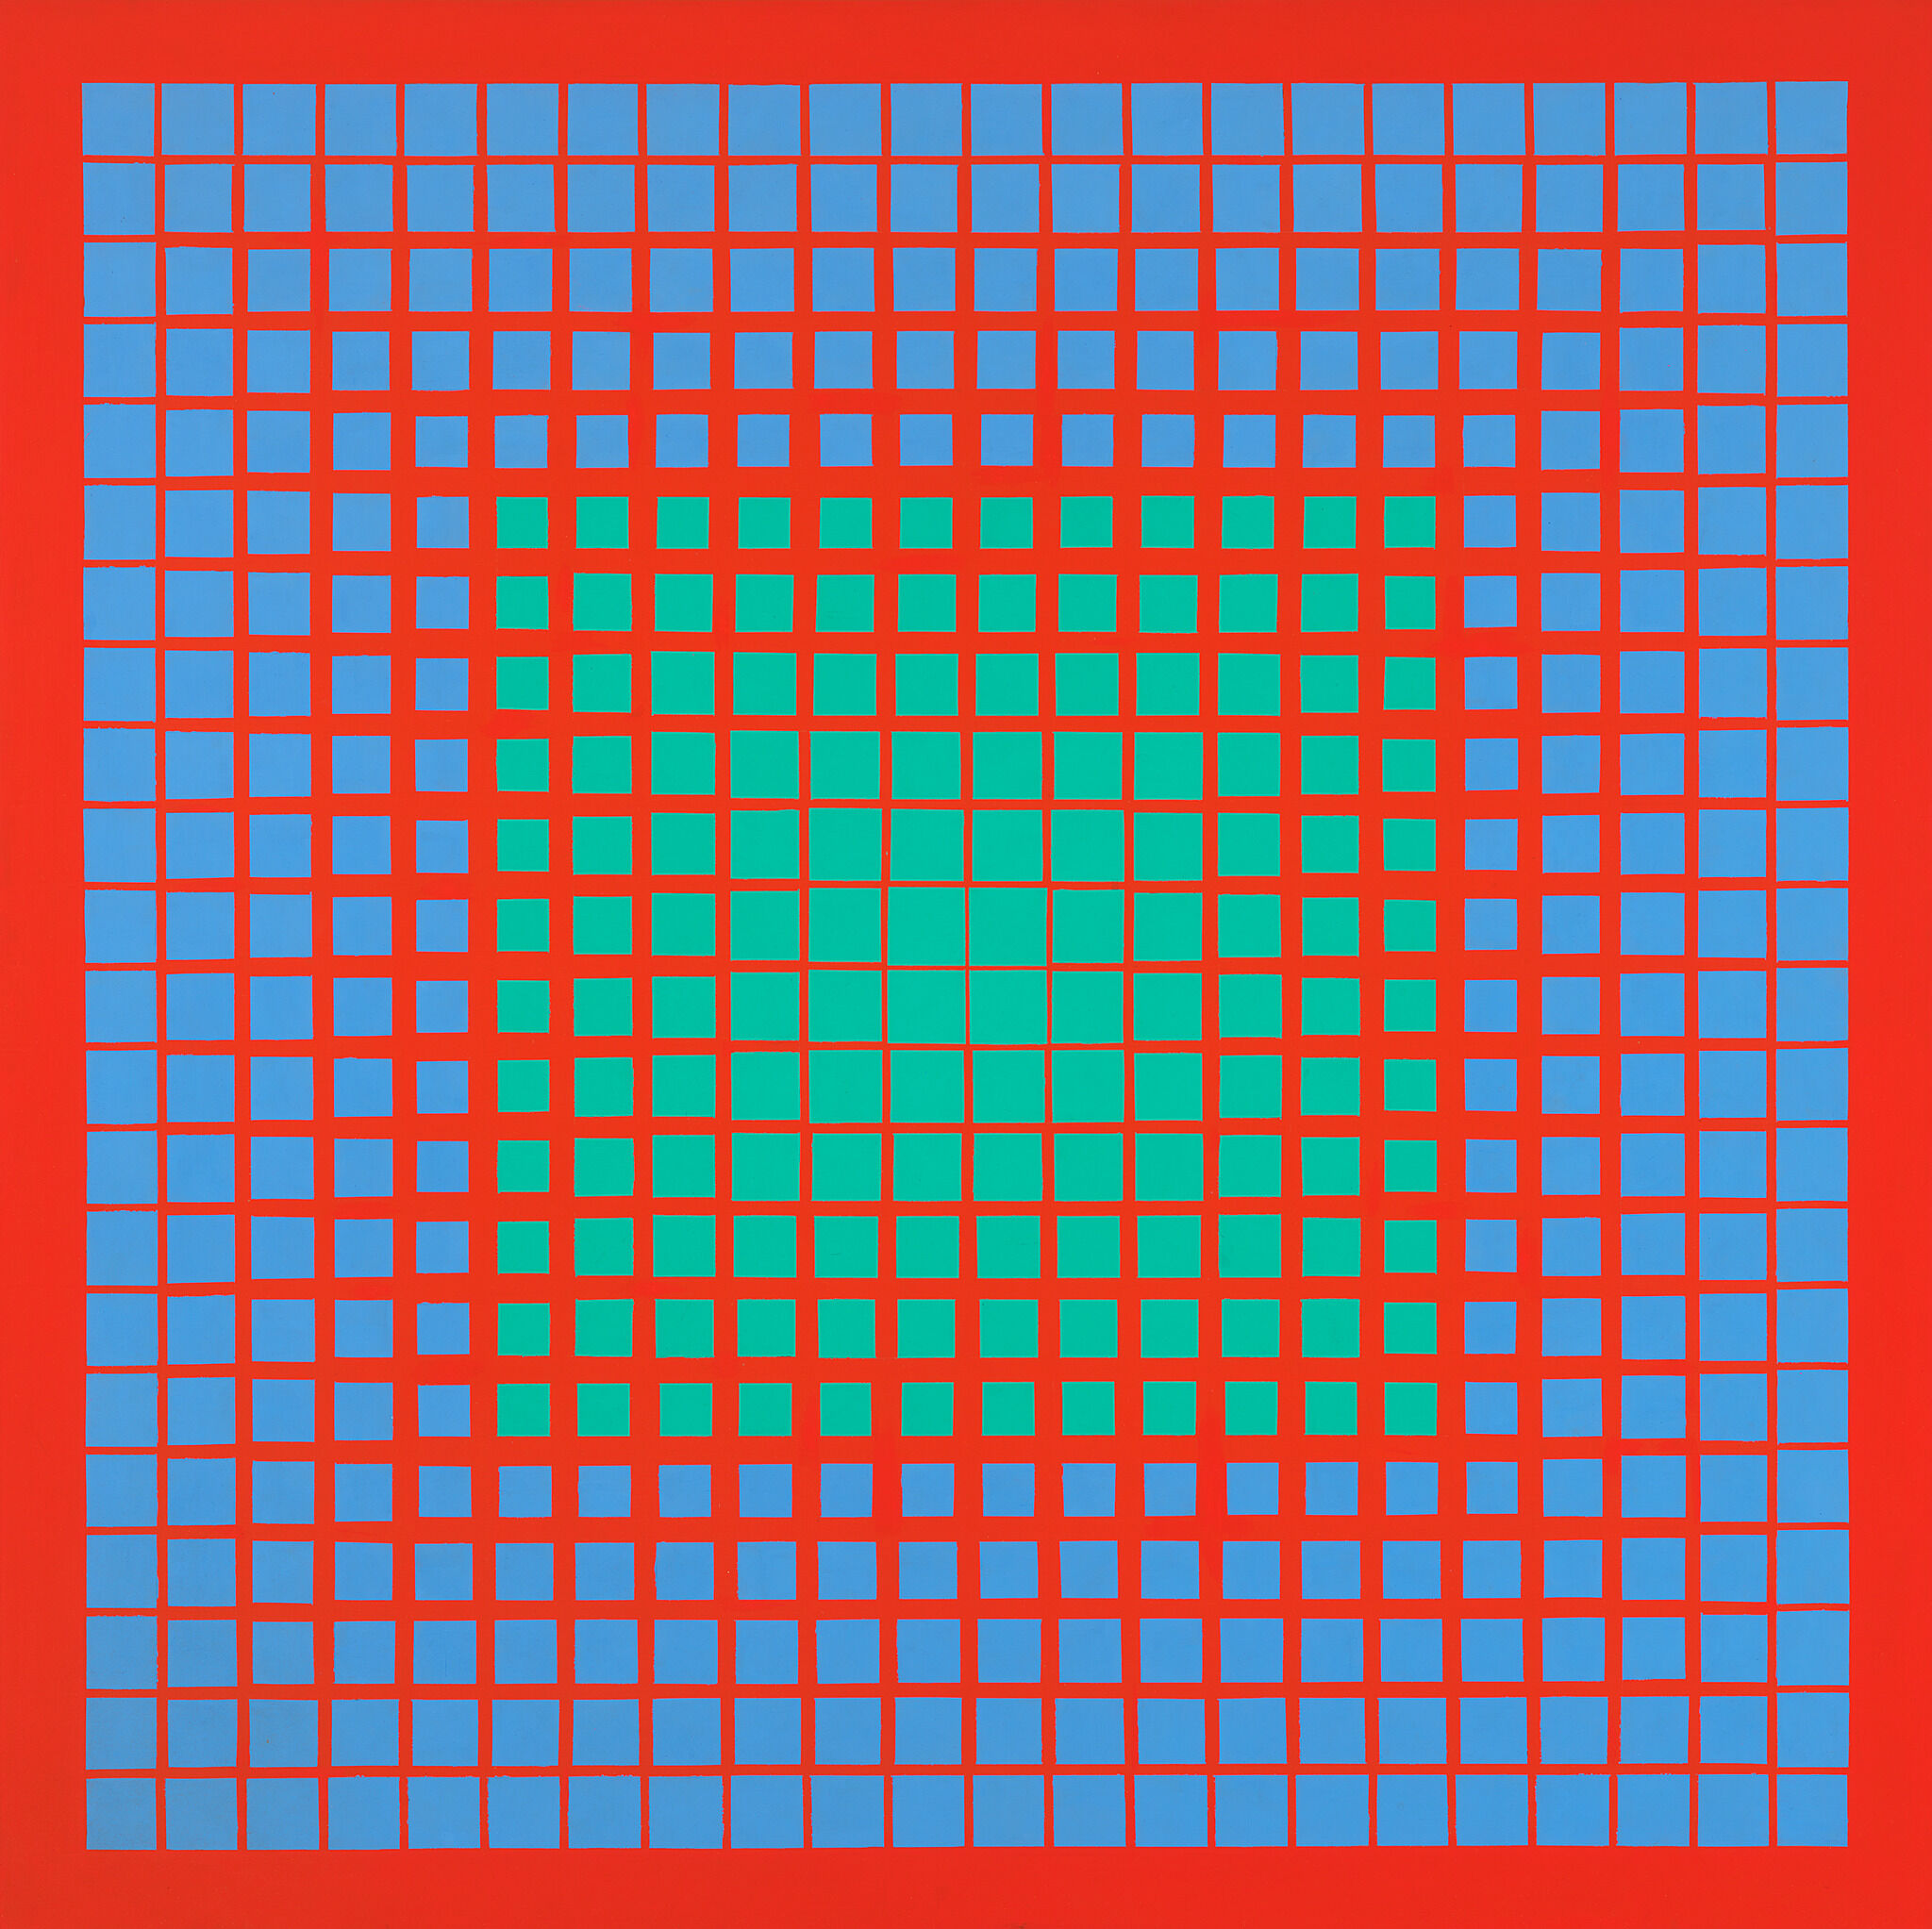 An abstract painting with a bright red background and pattern of green and blue squares